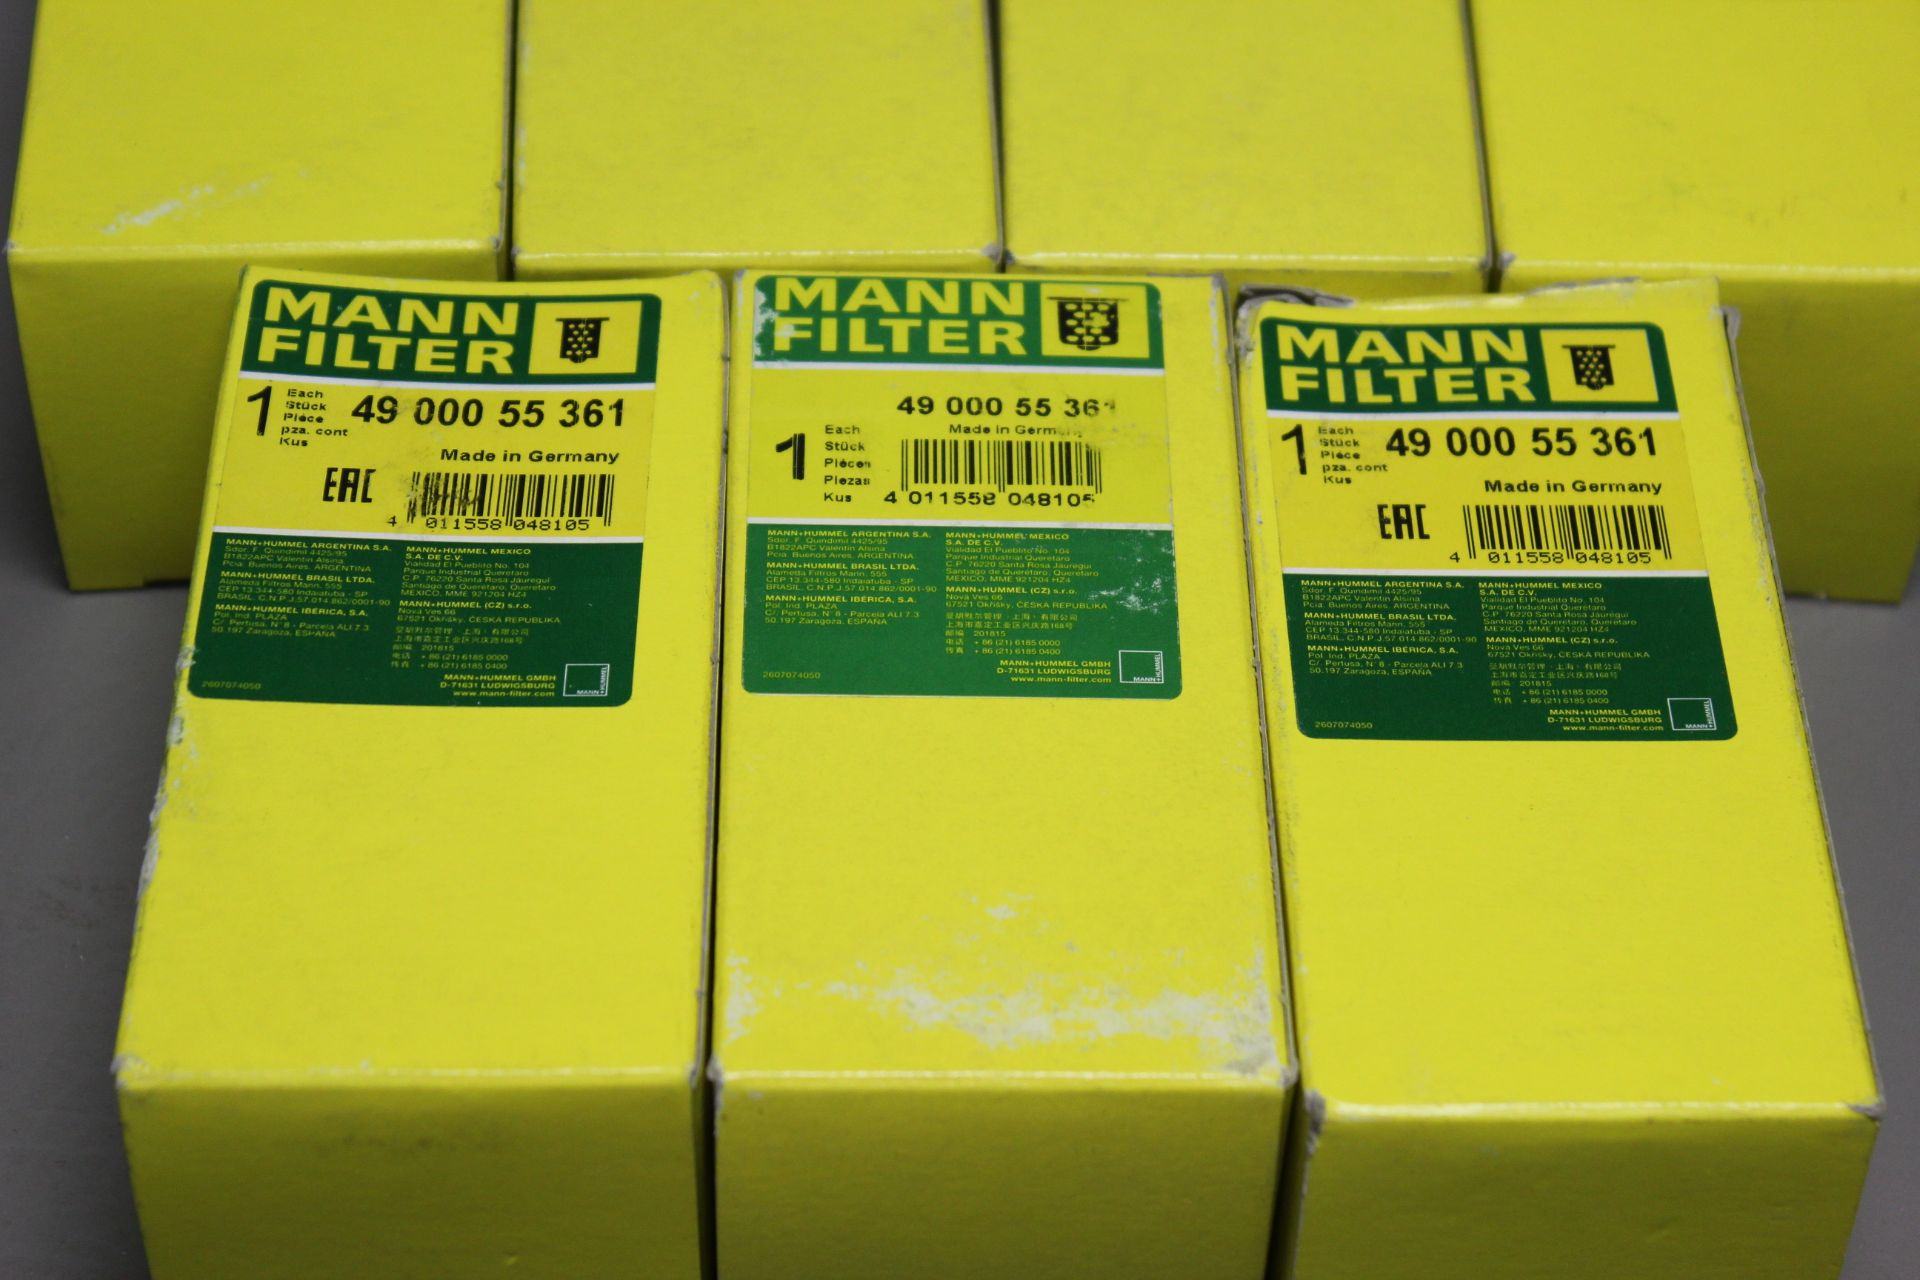 LOT OF NEW MANN INDUSTRIAL FILTERS - Image 2 of 3